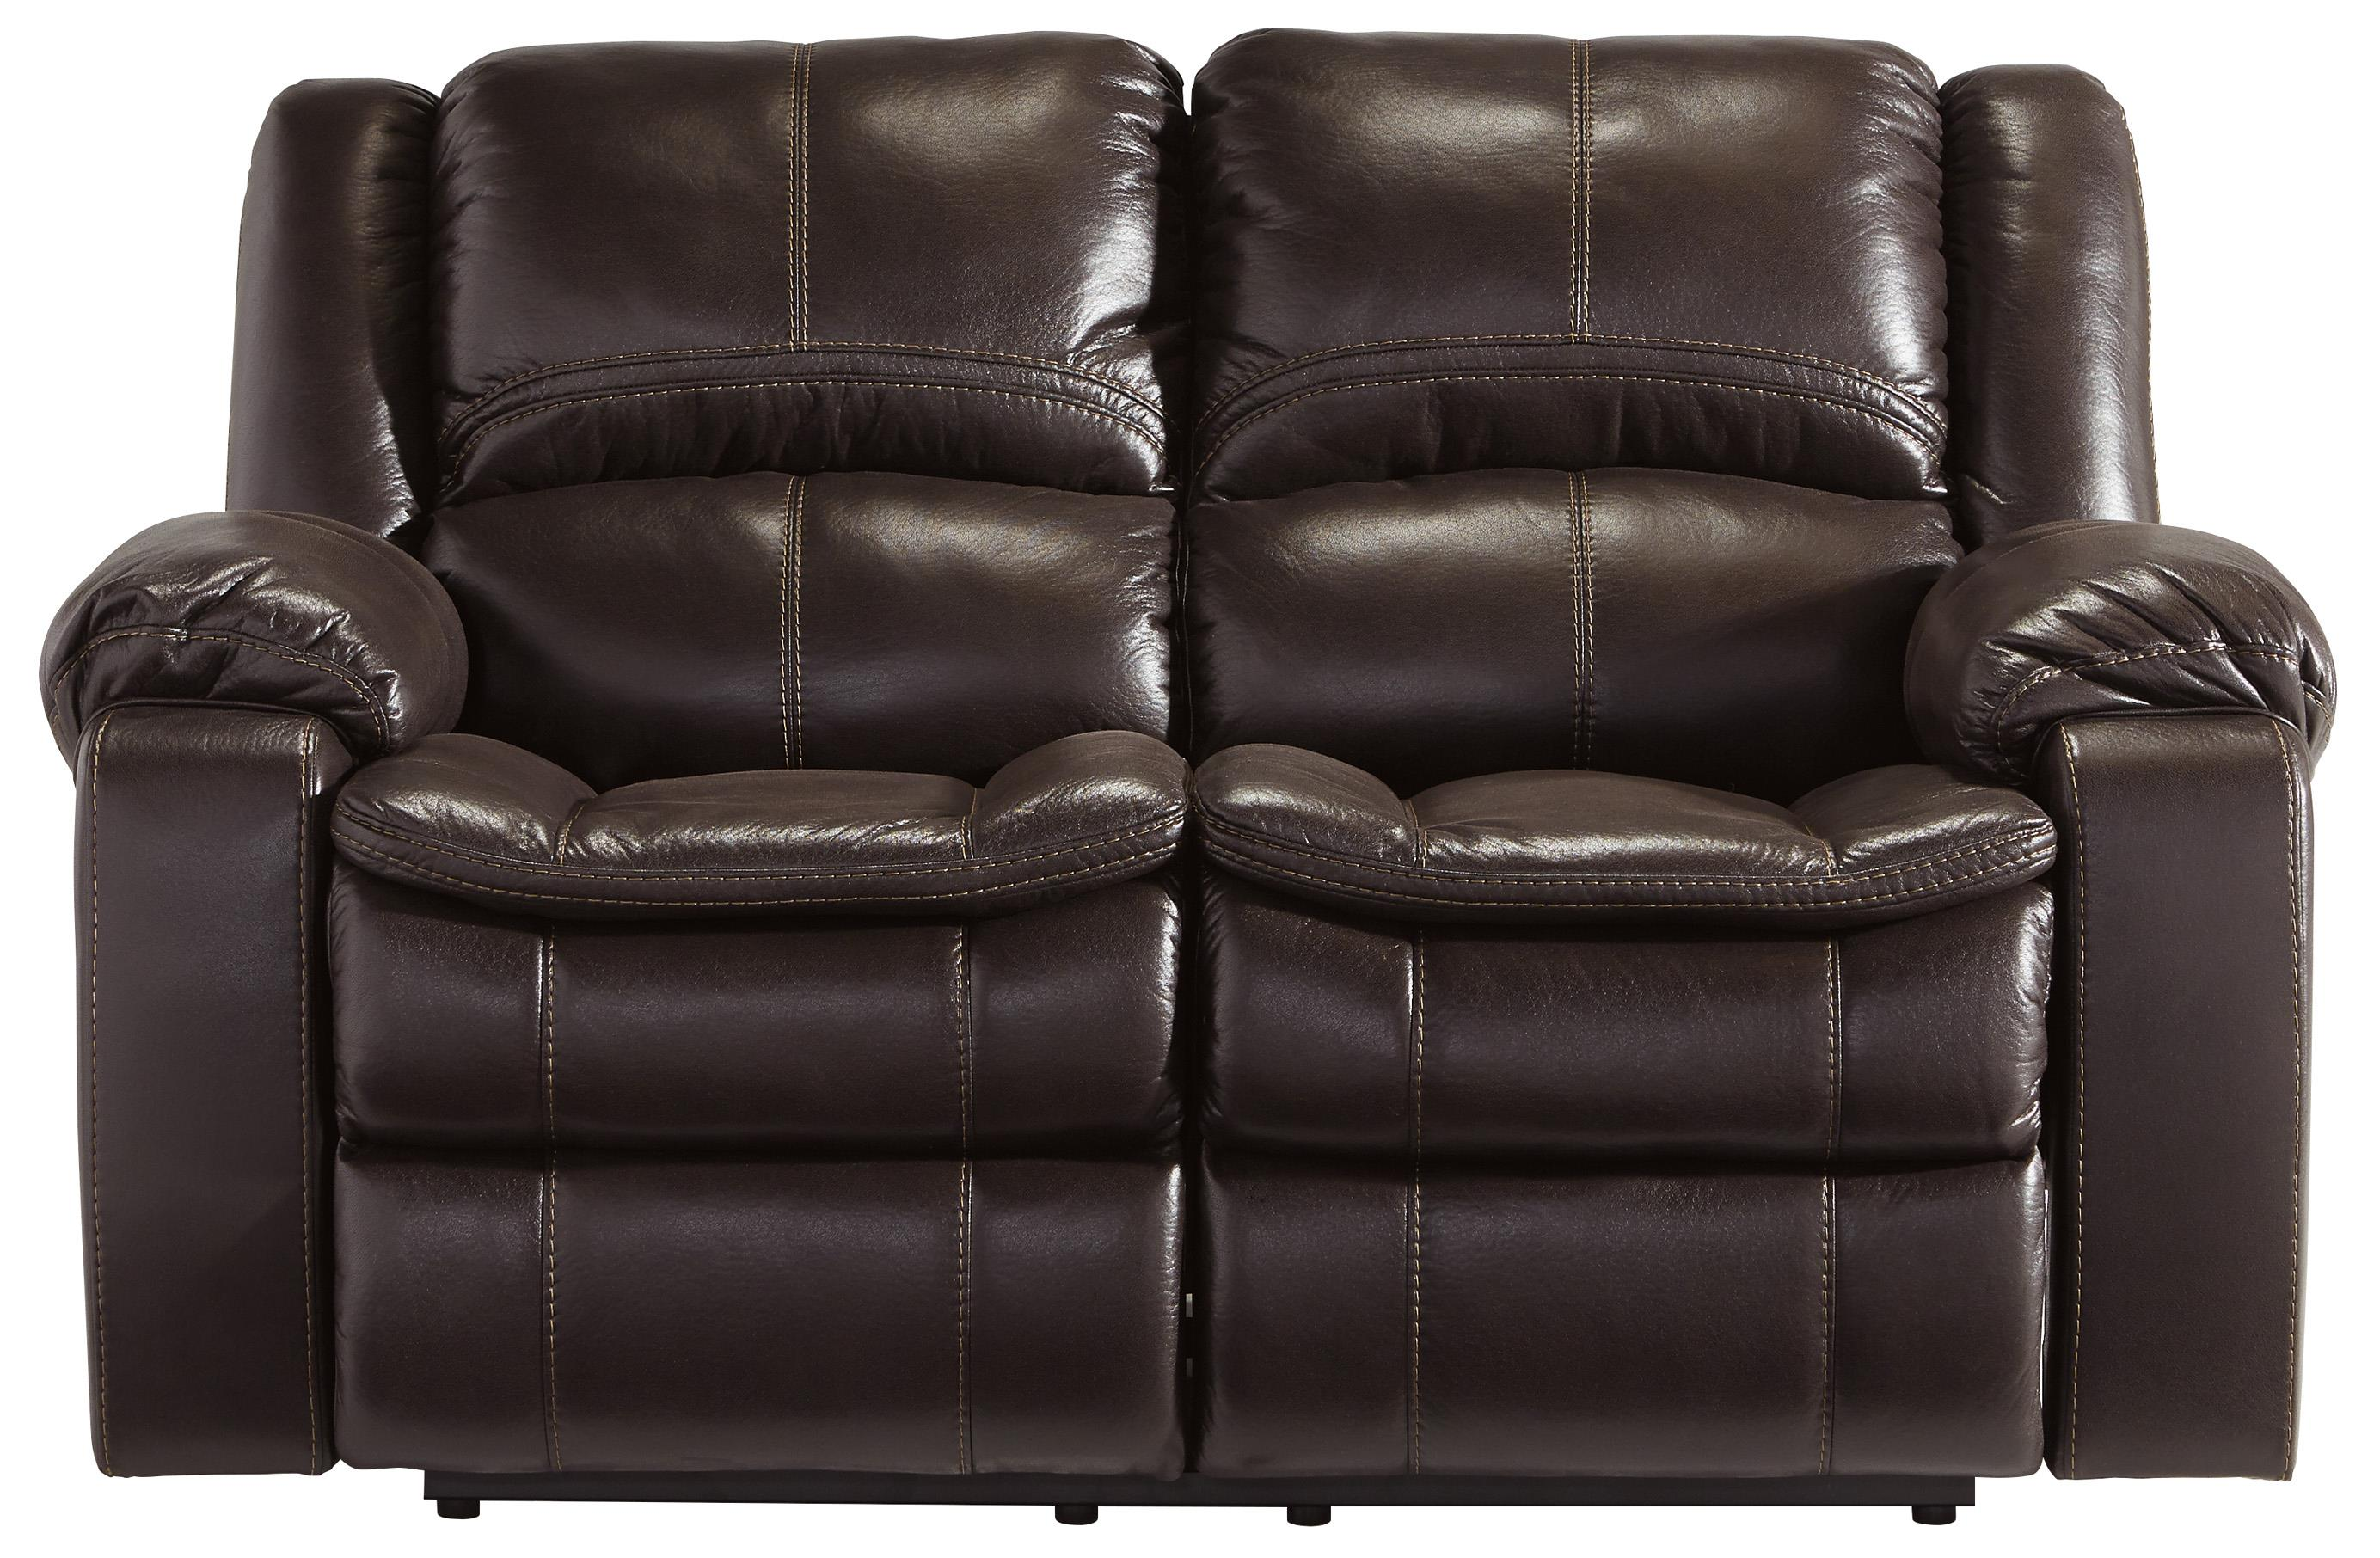 Signature Design by Ashley Long Knight Reclining Loveseat - Item Number: 8890586